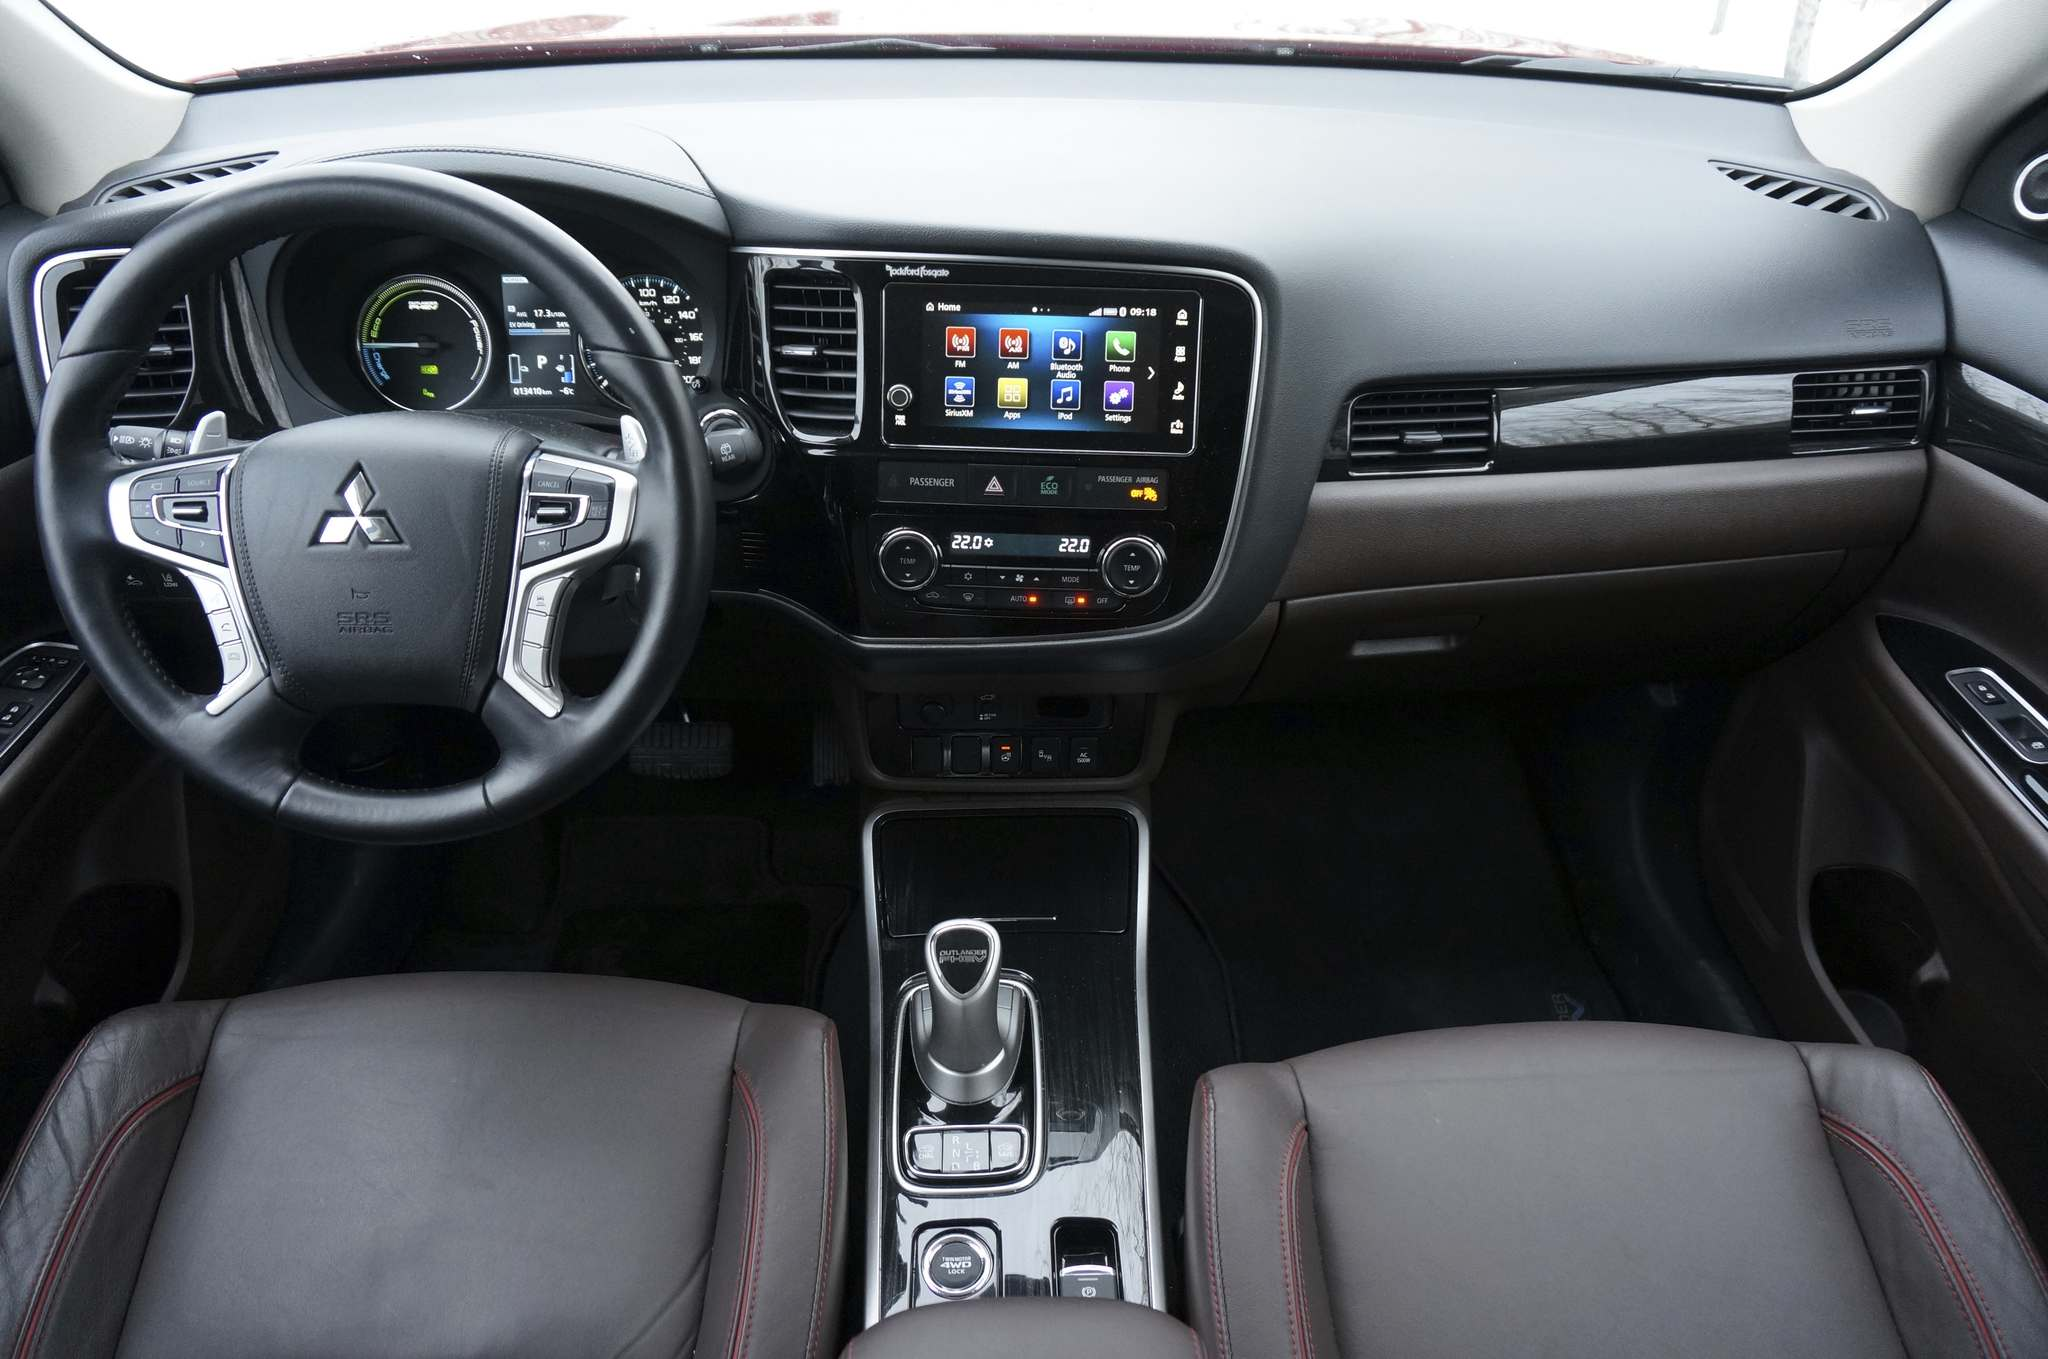 The Outlander's heating system can be controlled using a mobile app or on-screen menus.